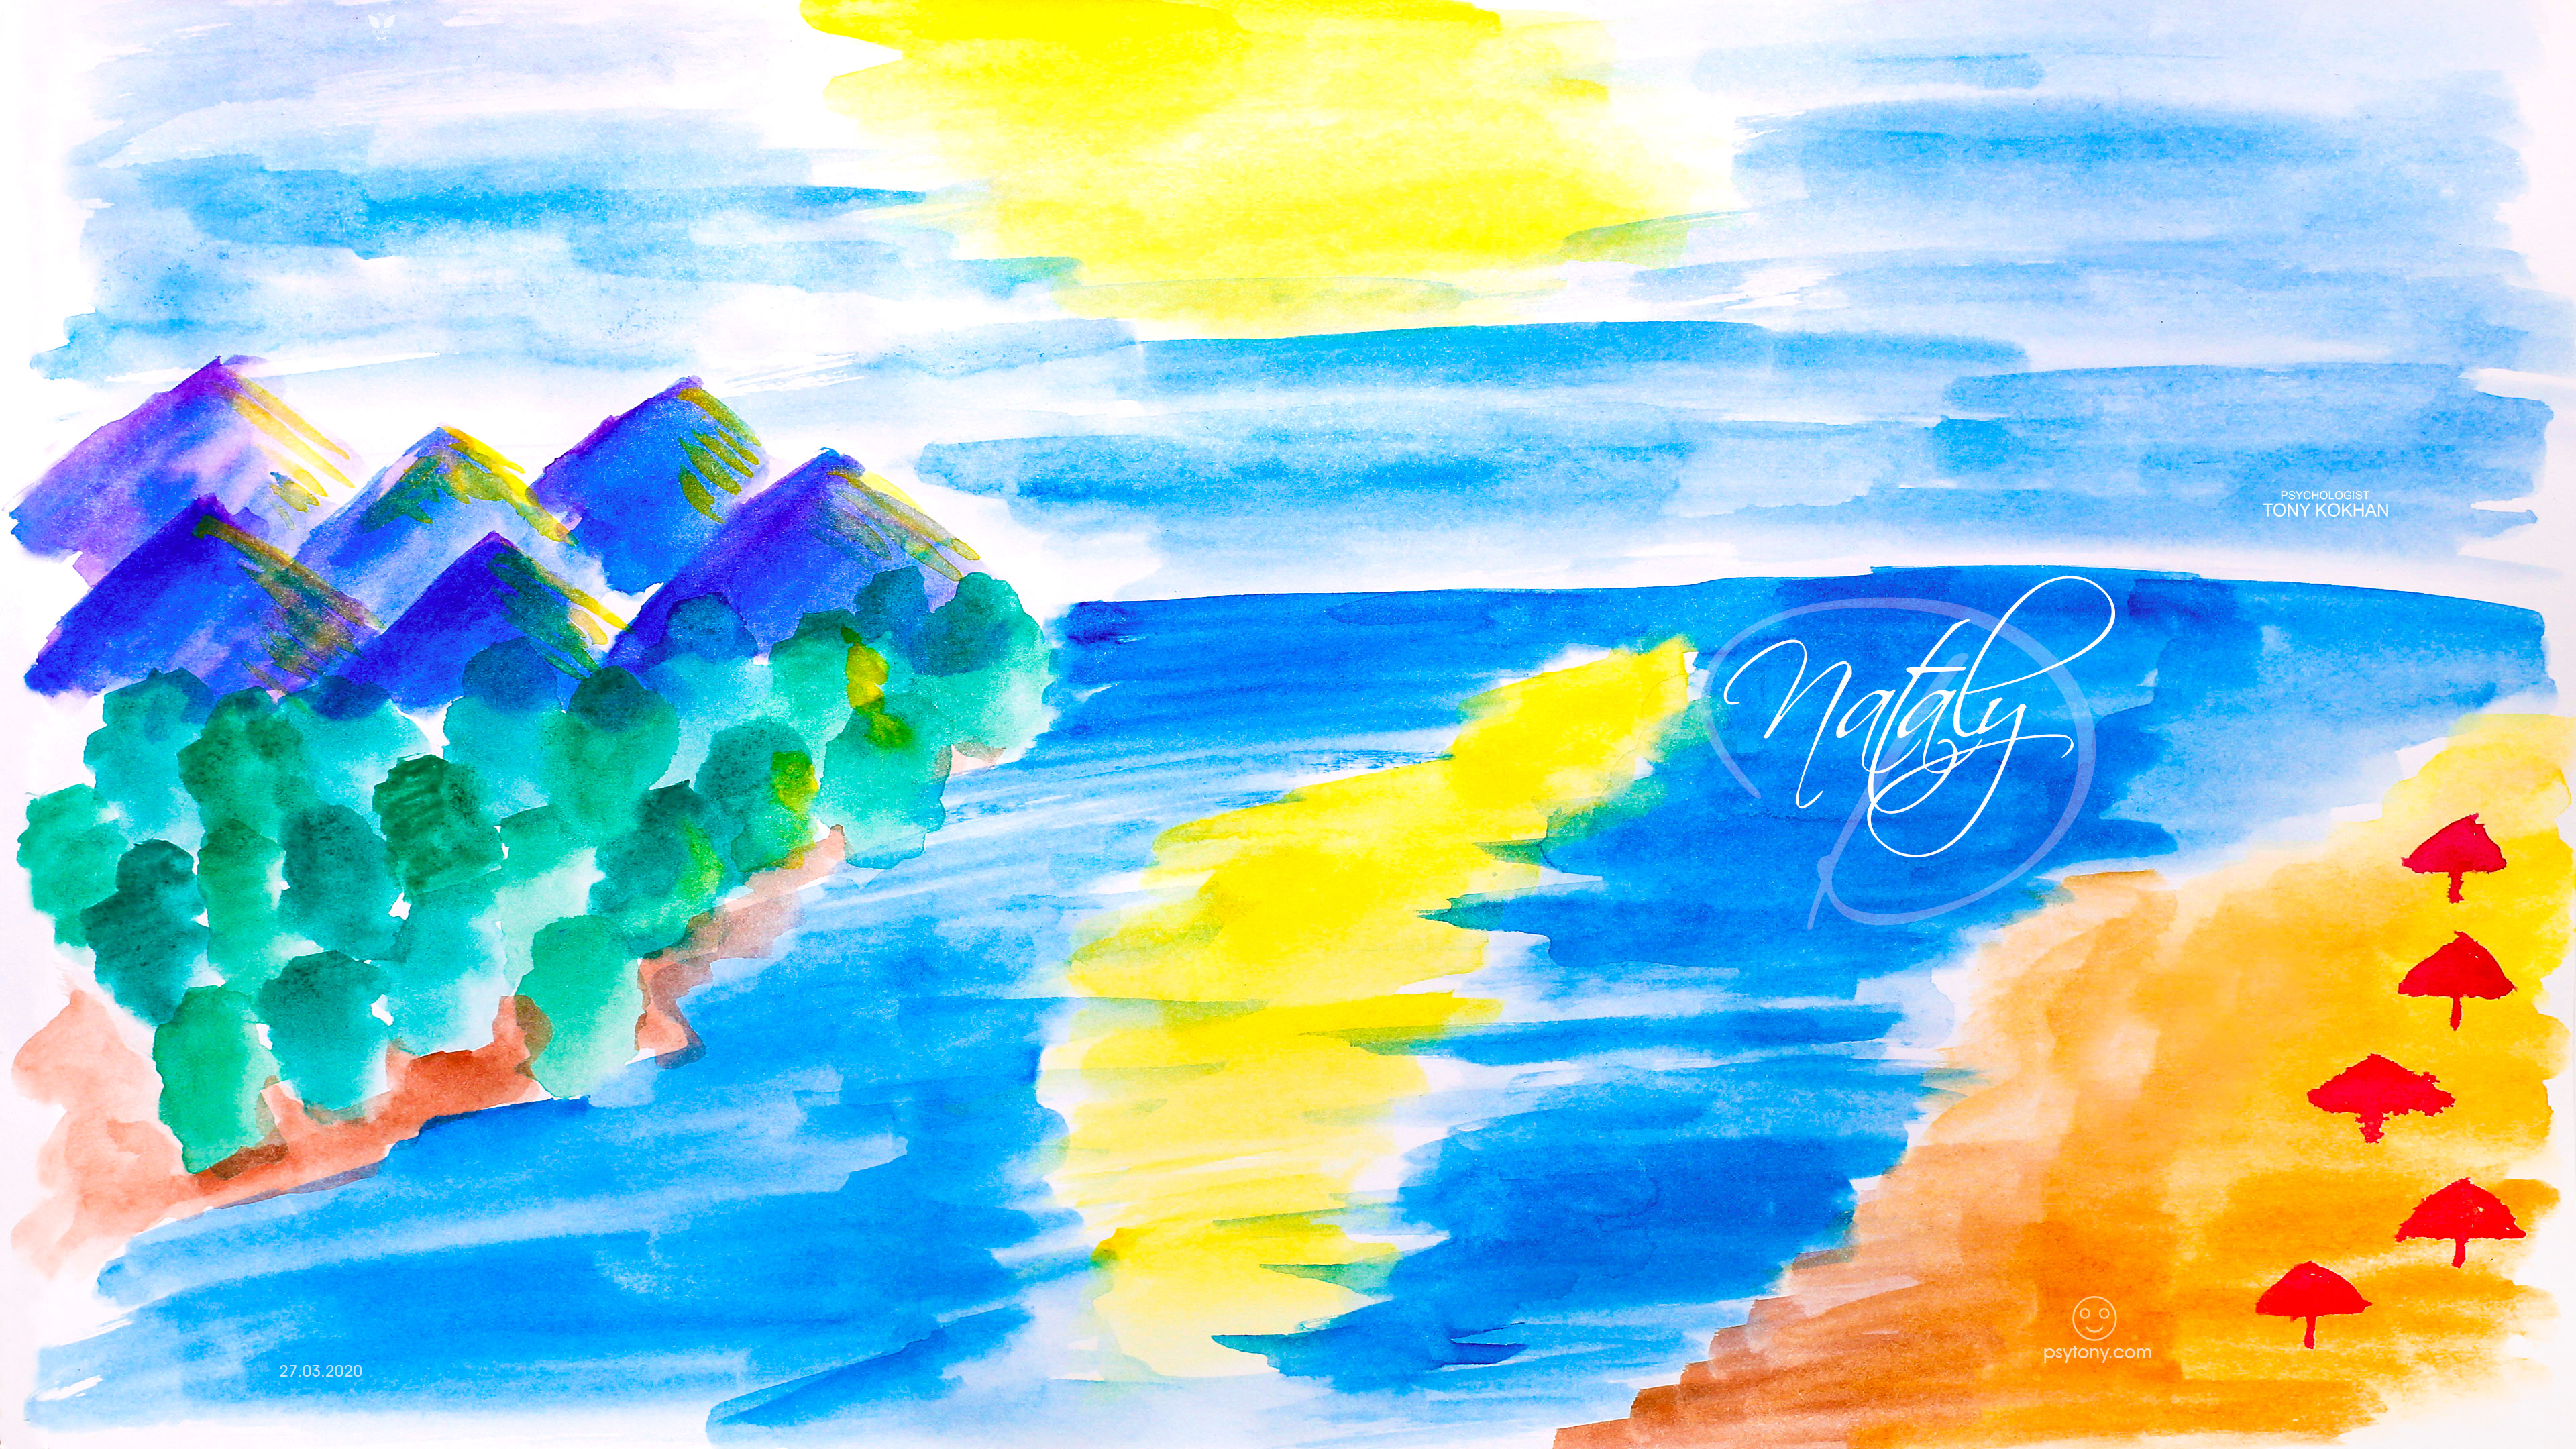 Nataly-Soul-Girl-Blurred-Sun-Deep-Reflection-Mountains-Red-Umbrellas-Beach-Lots-Of-Water-Blurry-Trees-Watercolor-Art-2020-Multicolors-4K-Wallpapers-by-Psychologist-Tony-Kokhan-www.psytony.com-image